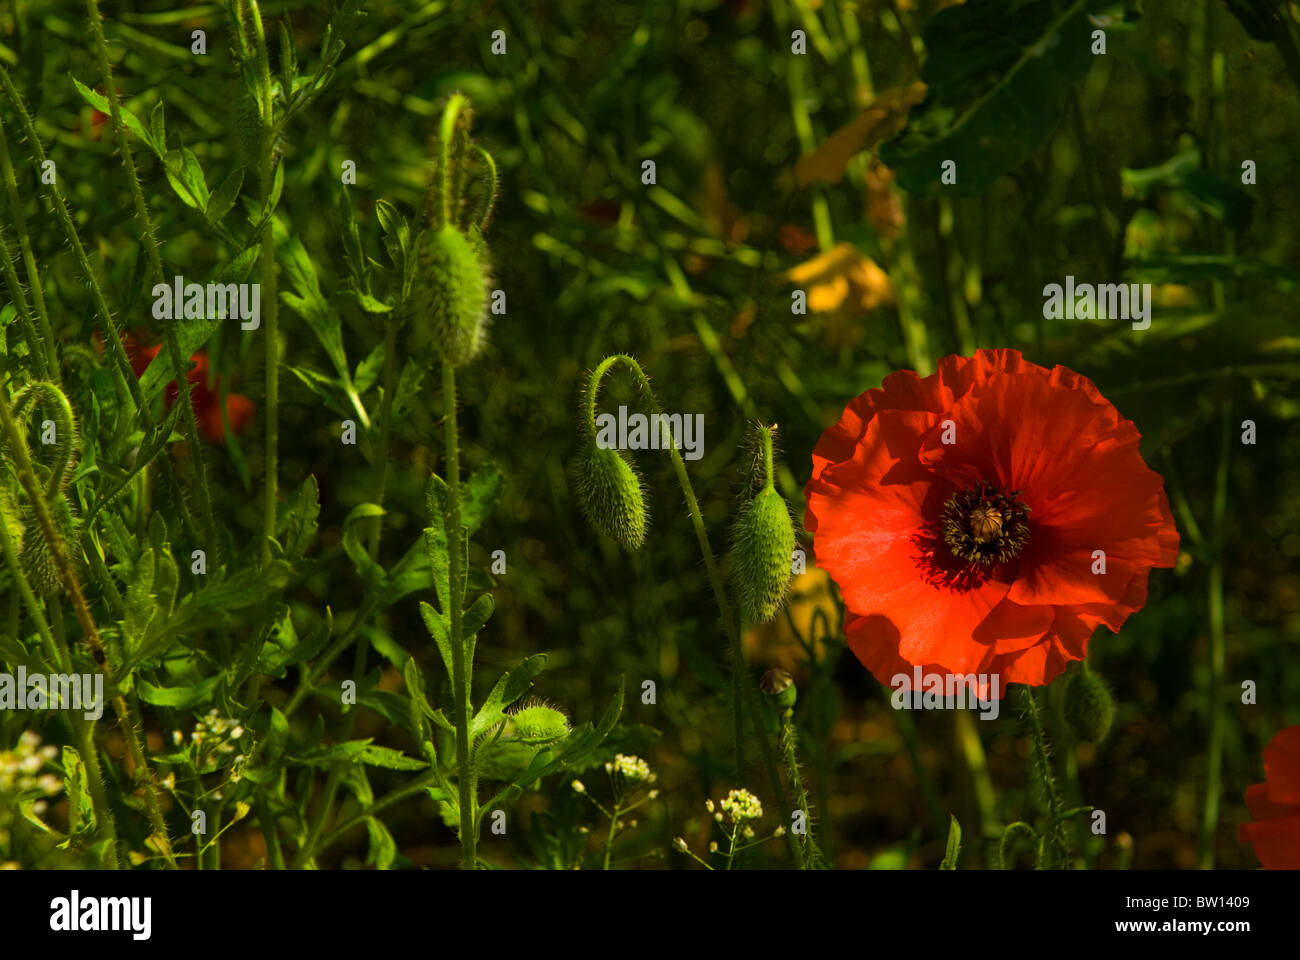 Papaver rhoeas red poppy in flower and poppy seed bud heads - Stock Image